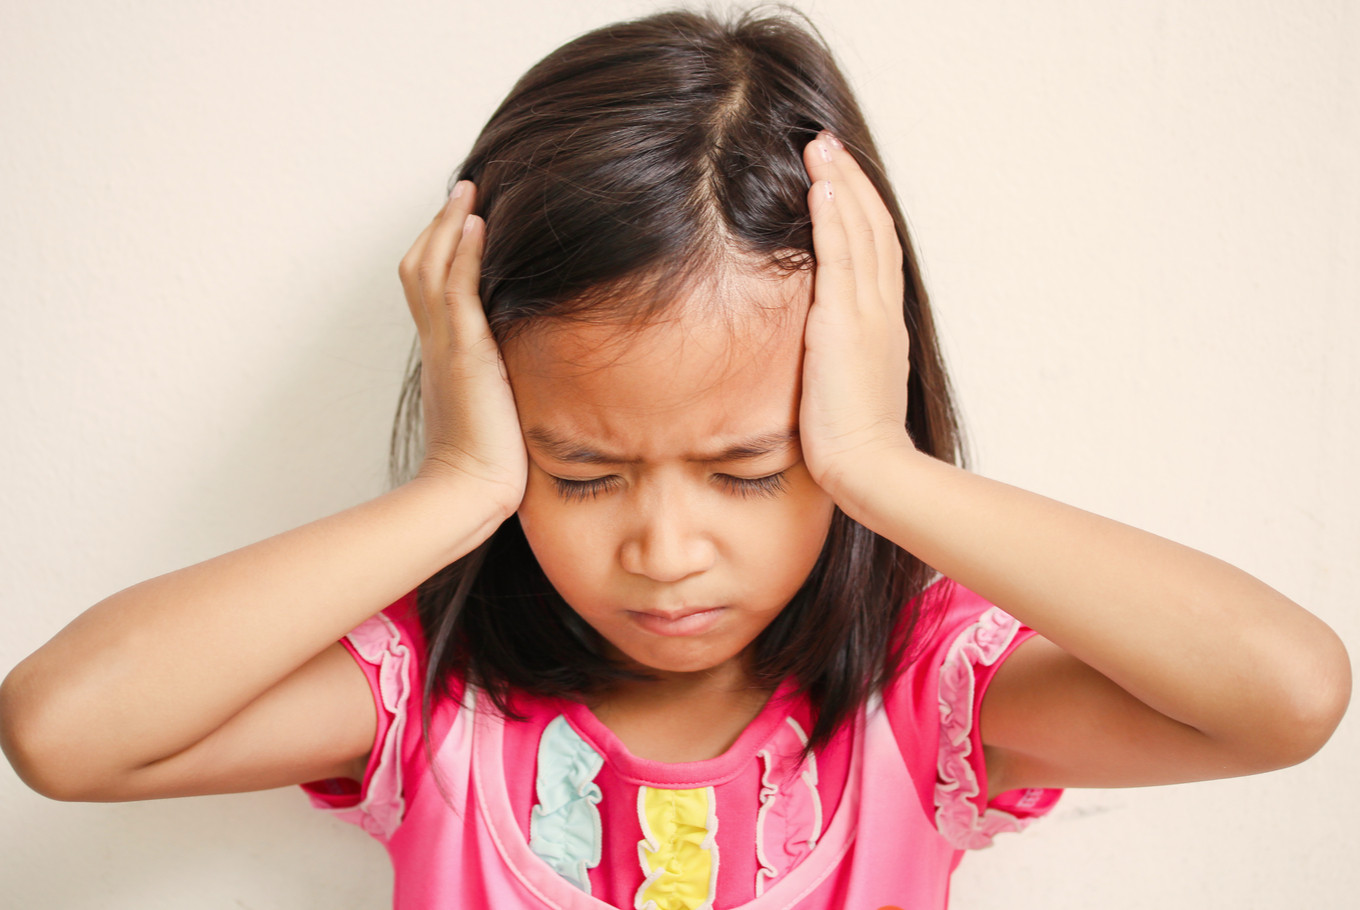 Anxiety in autistic children: Why rates are so high